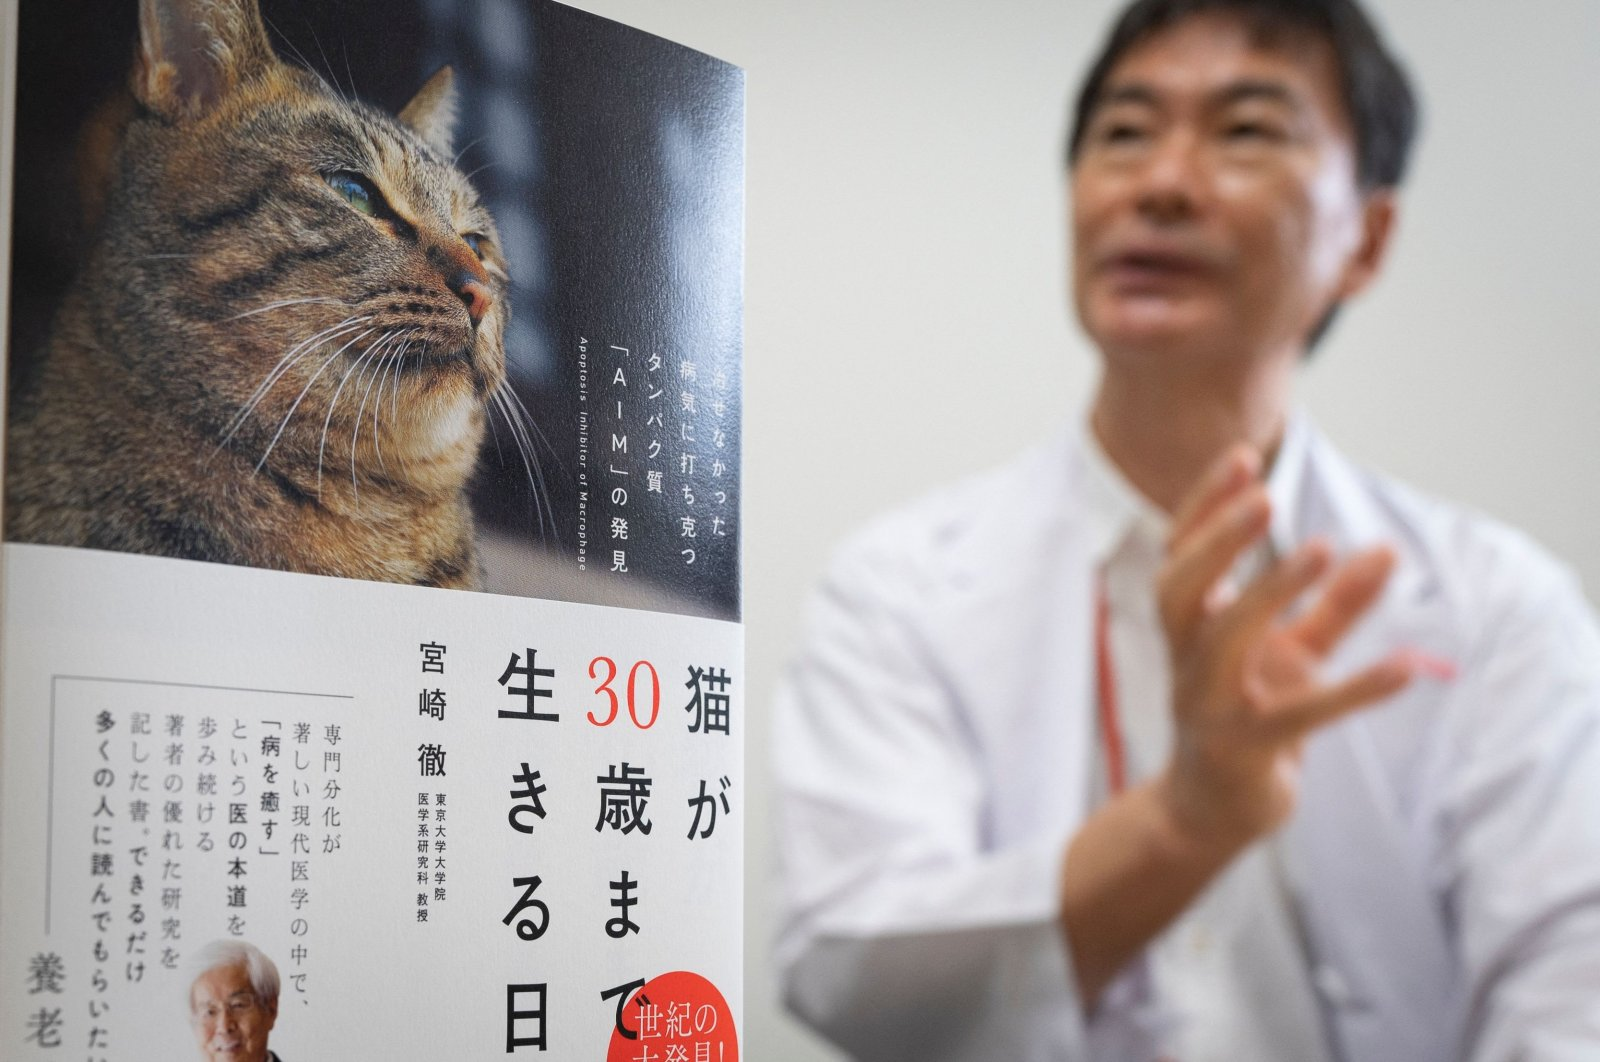 Immunology professor Toru Miyazaki explaining his study behind a copy of his book (L) during an interview with AFPBB News at the University of Tokyo, Tokyo, Japan, July 30, 2021. (AFPBB News via AFP)